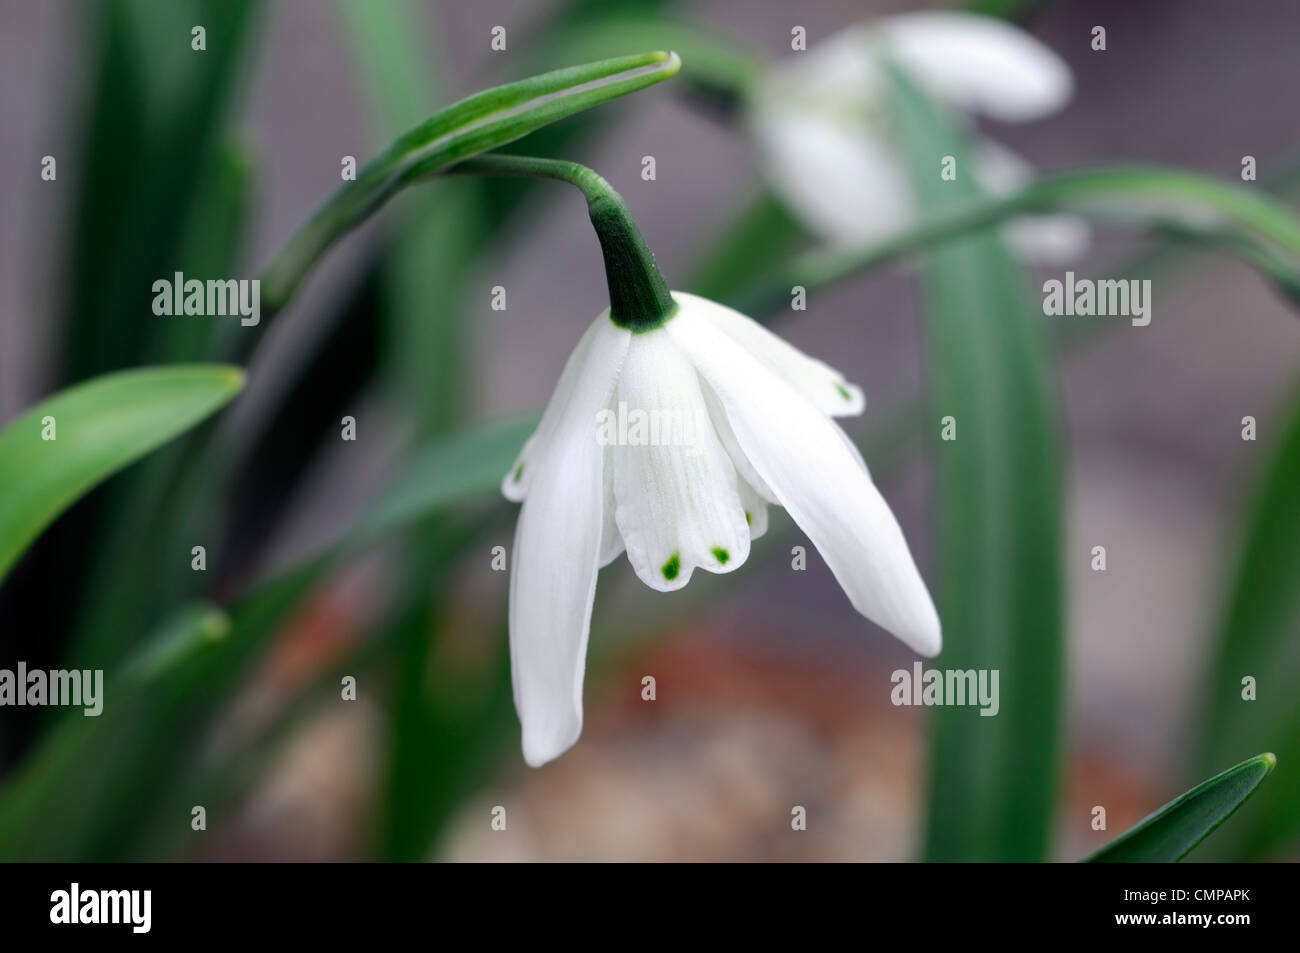 Snowdrop Bulbs Stock Photos Snowdrop Bulbs Stock Images Alamy